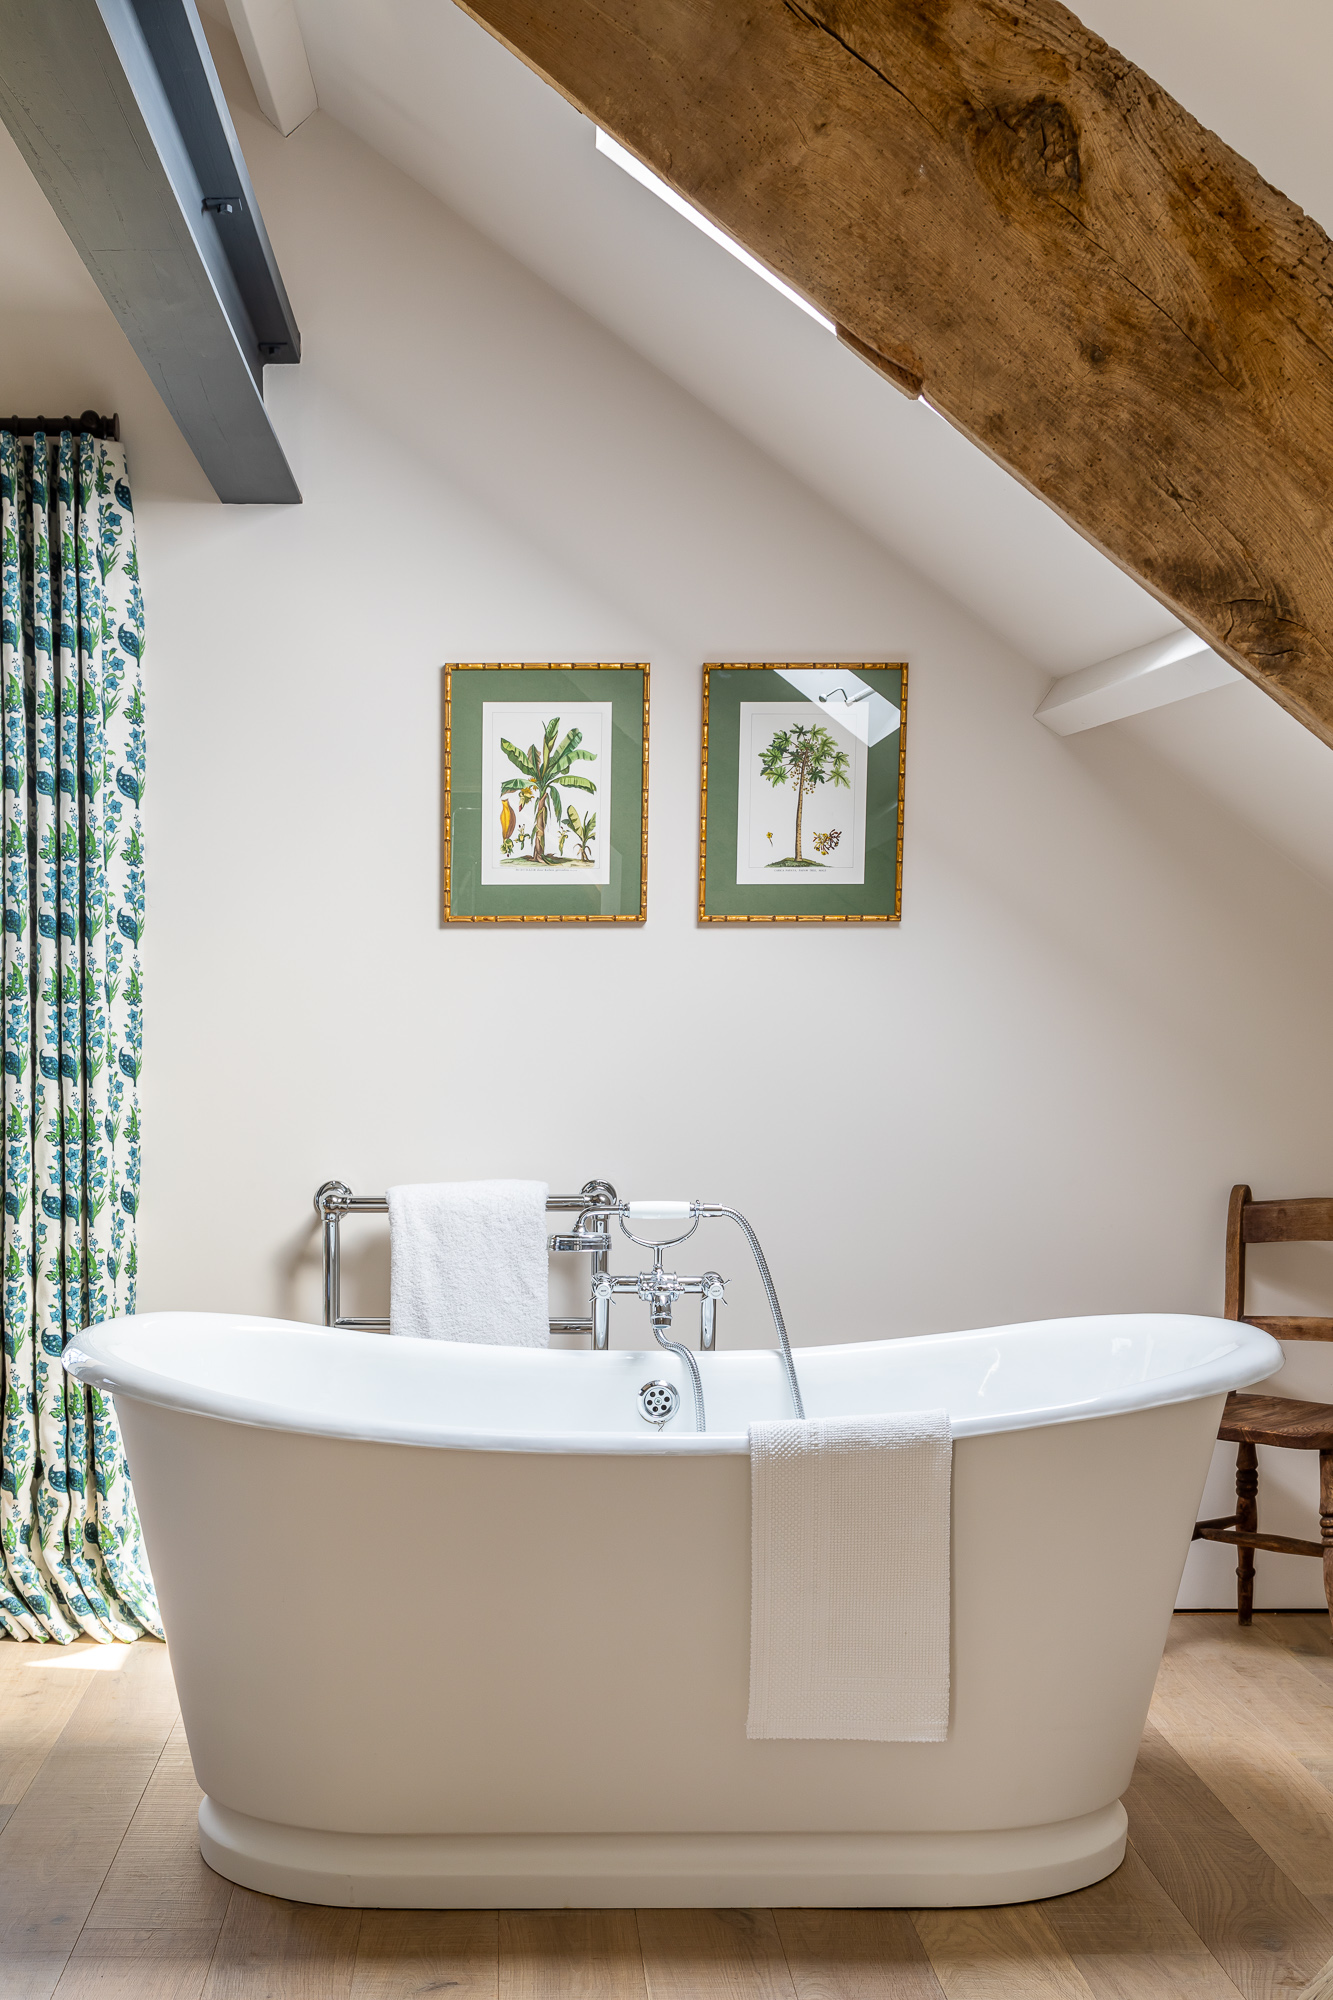 jonathan bond, interior photographer, freestanding bath marnhull